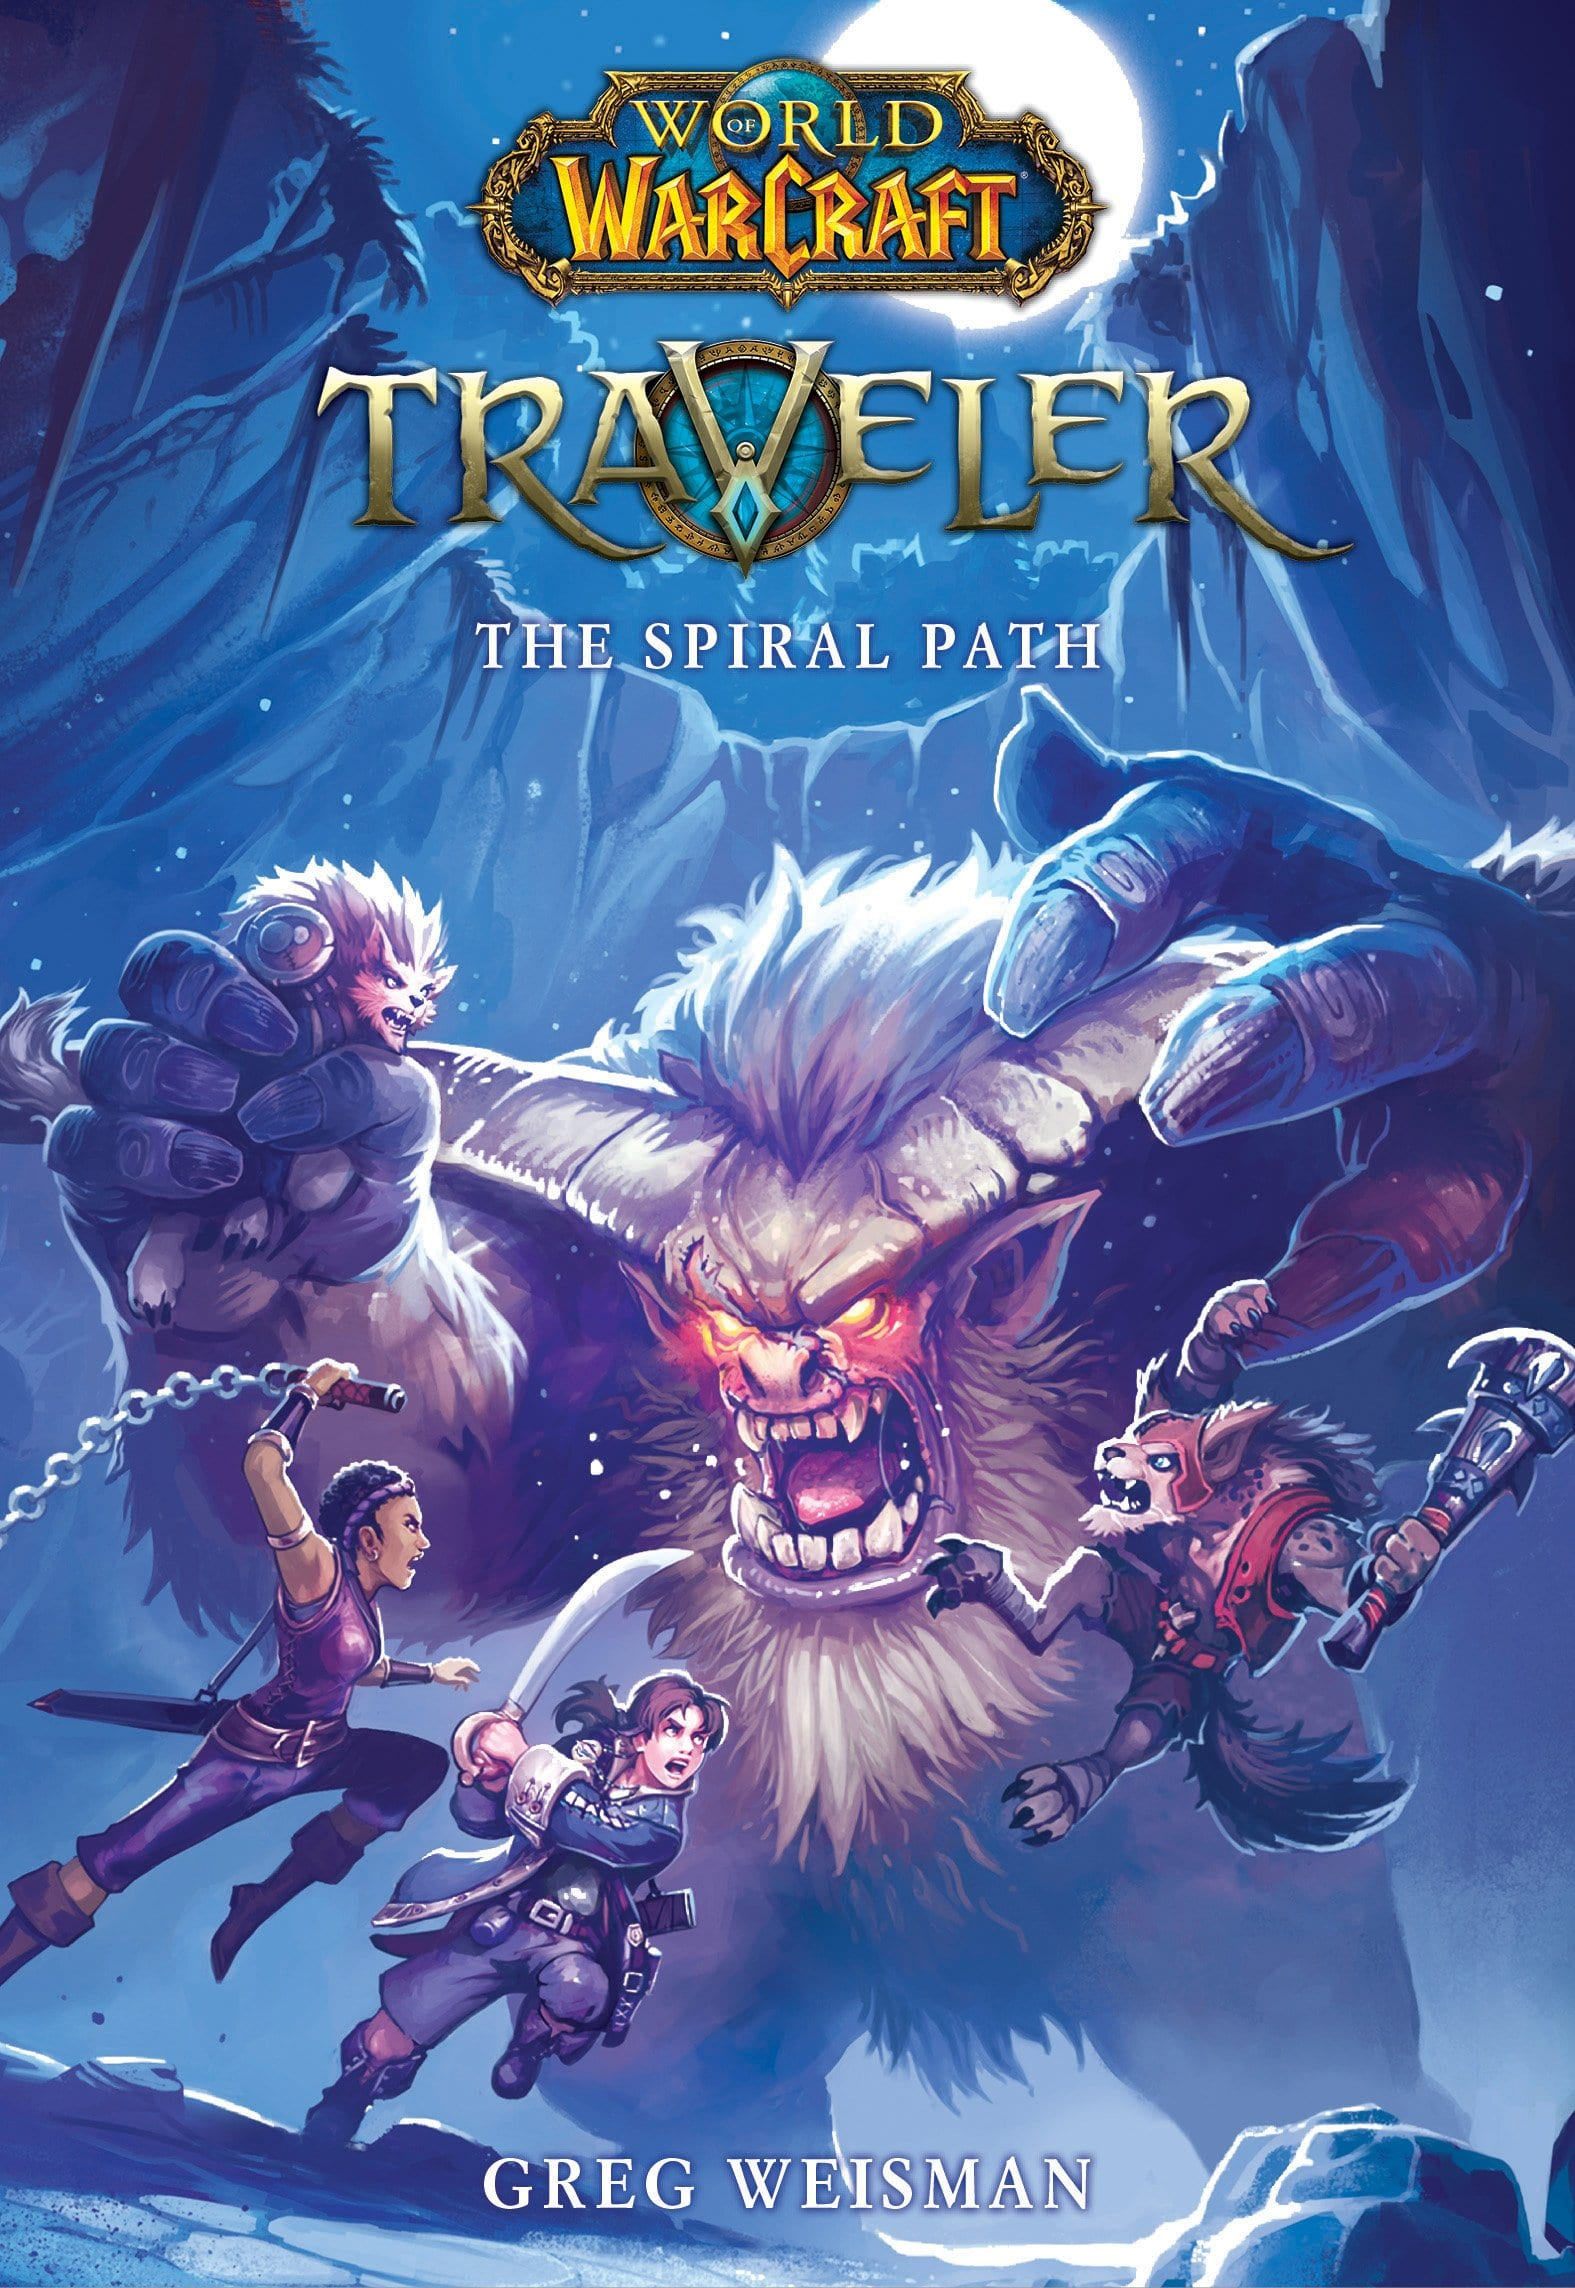 Libros De World Of Warcraft Traveler The Spiral Path A La Venta El 27 De Febrero De